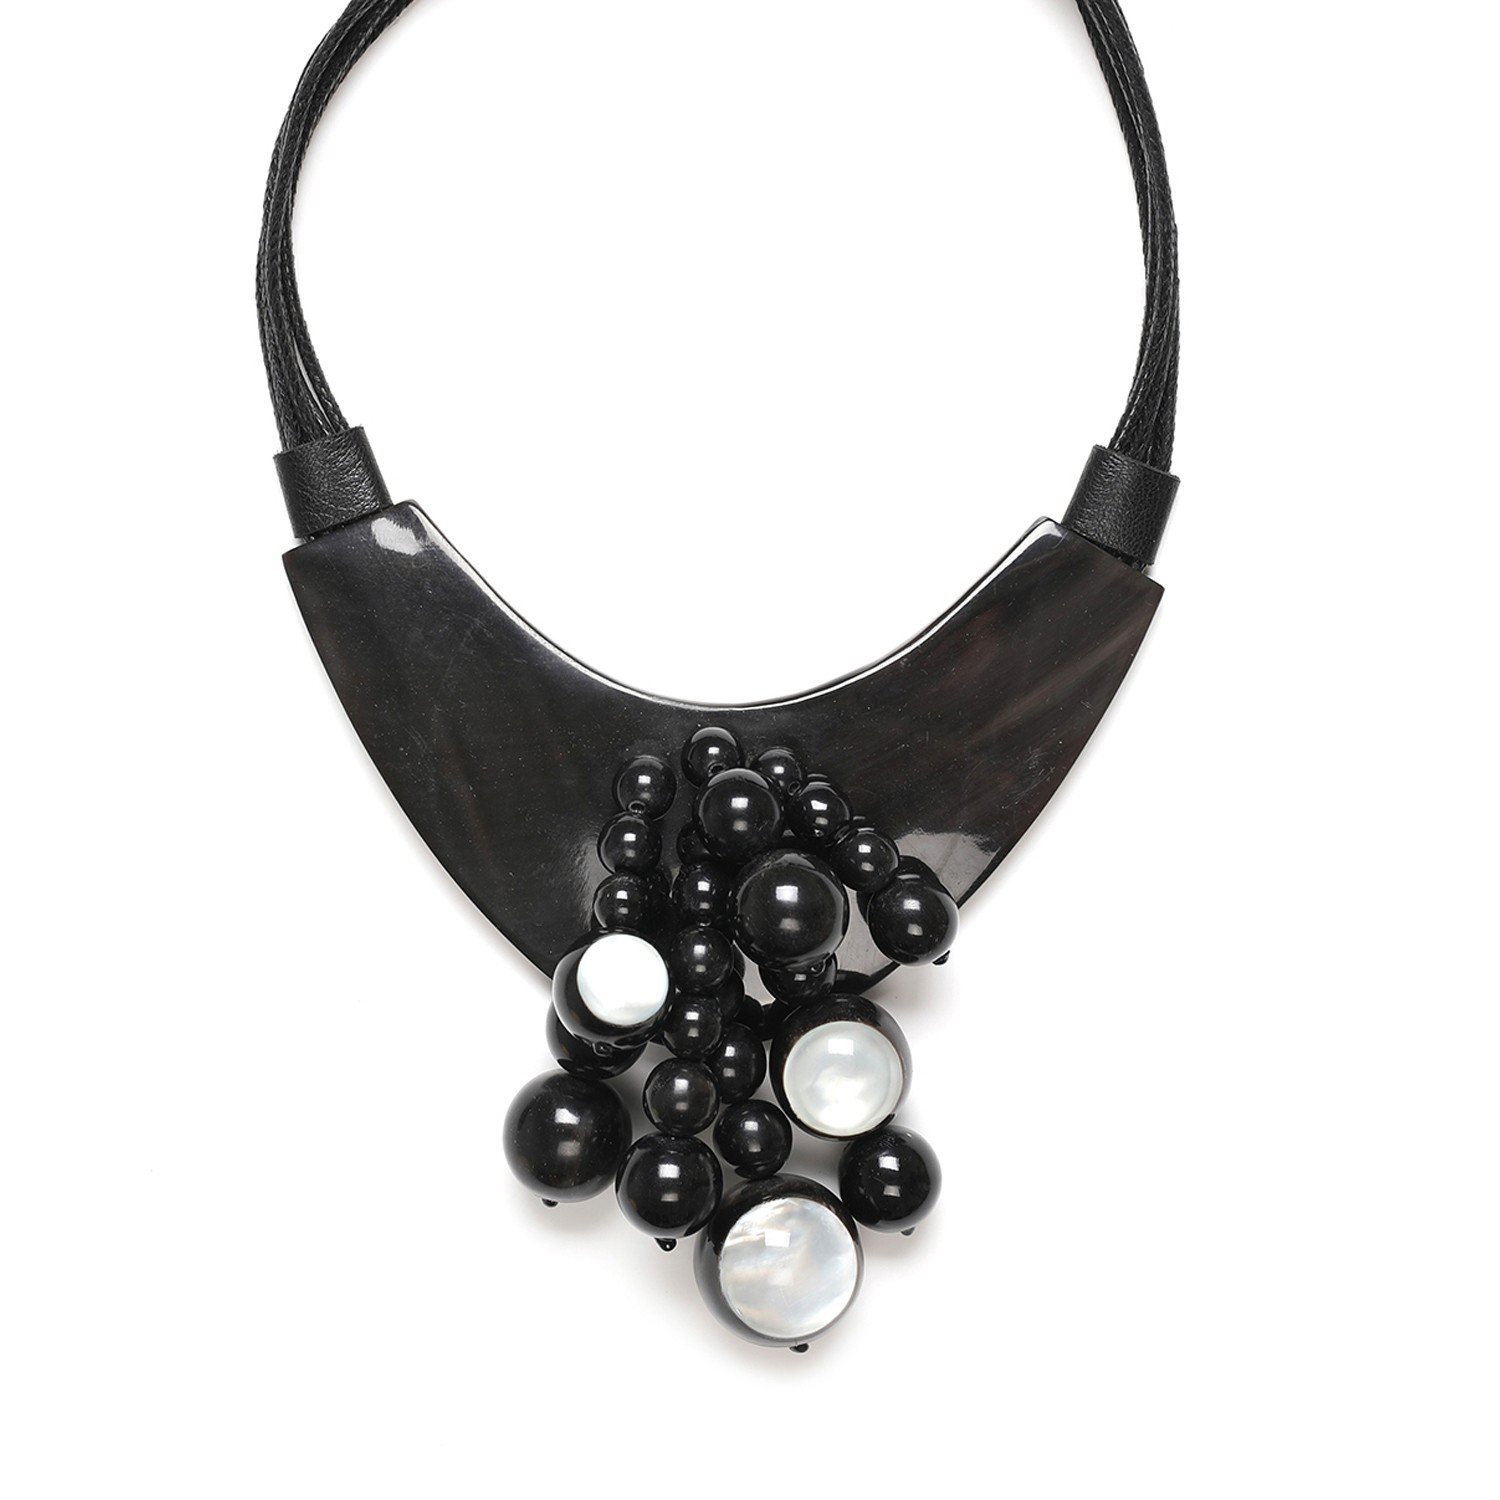 MIDNIGHT LE collier